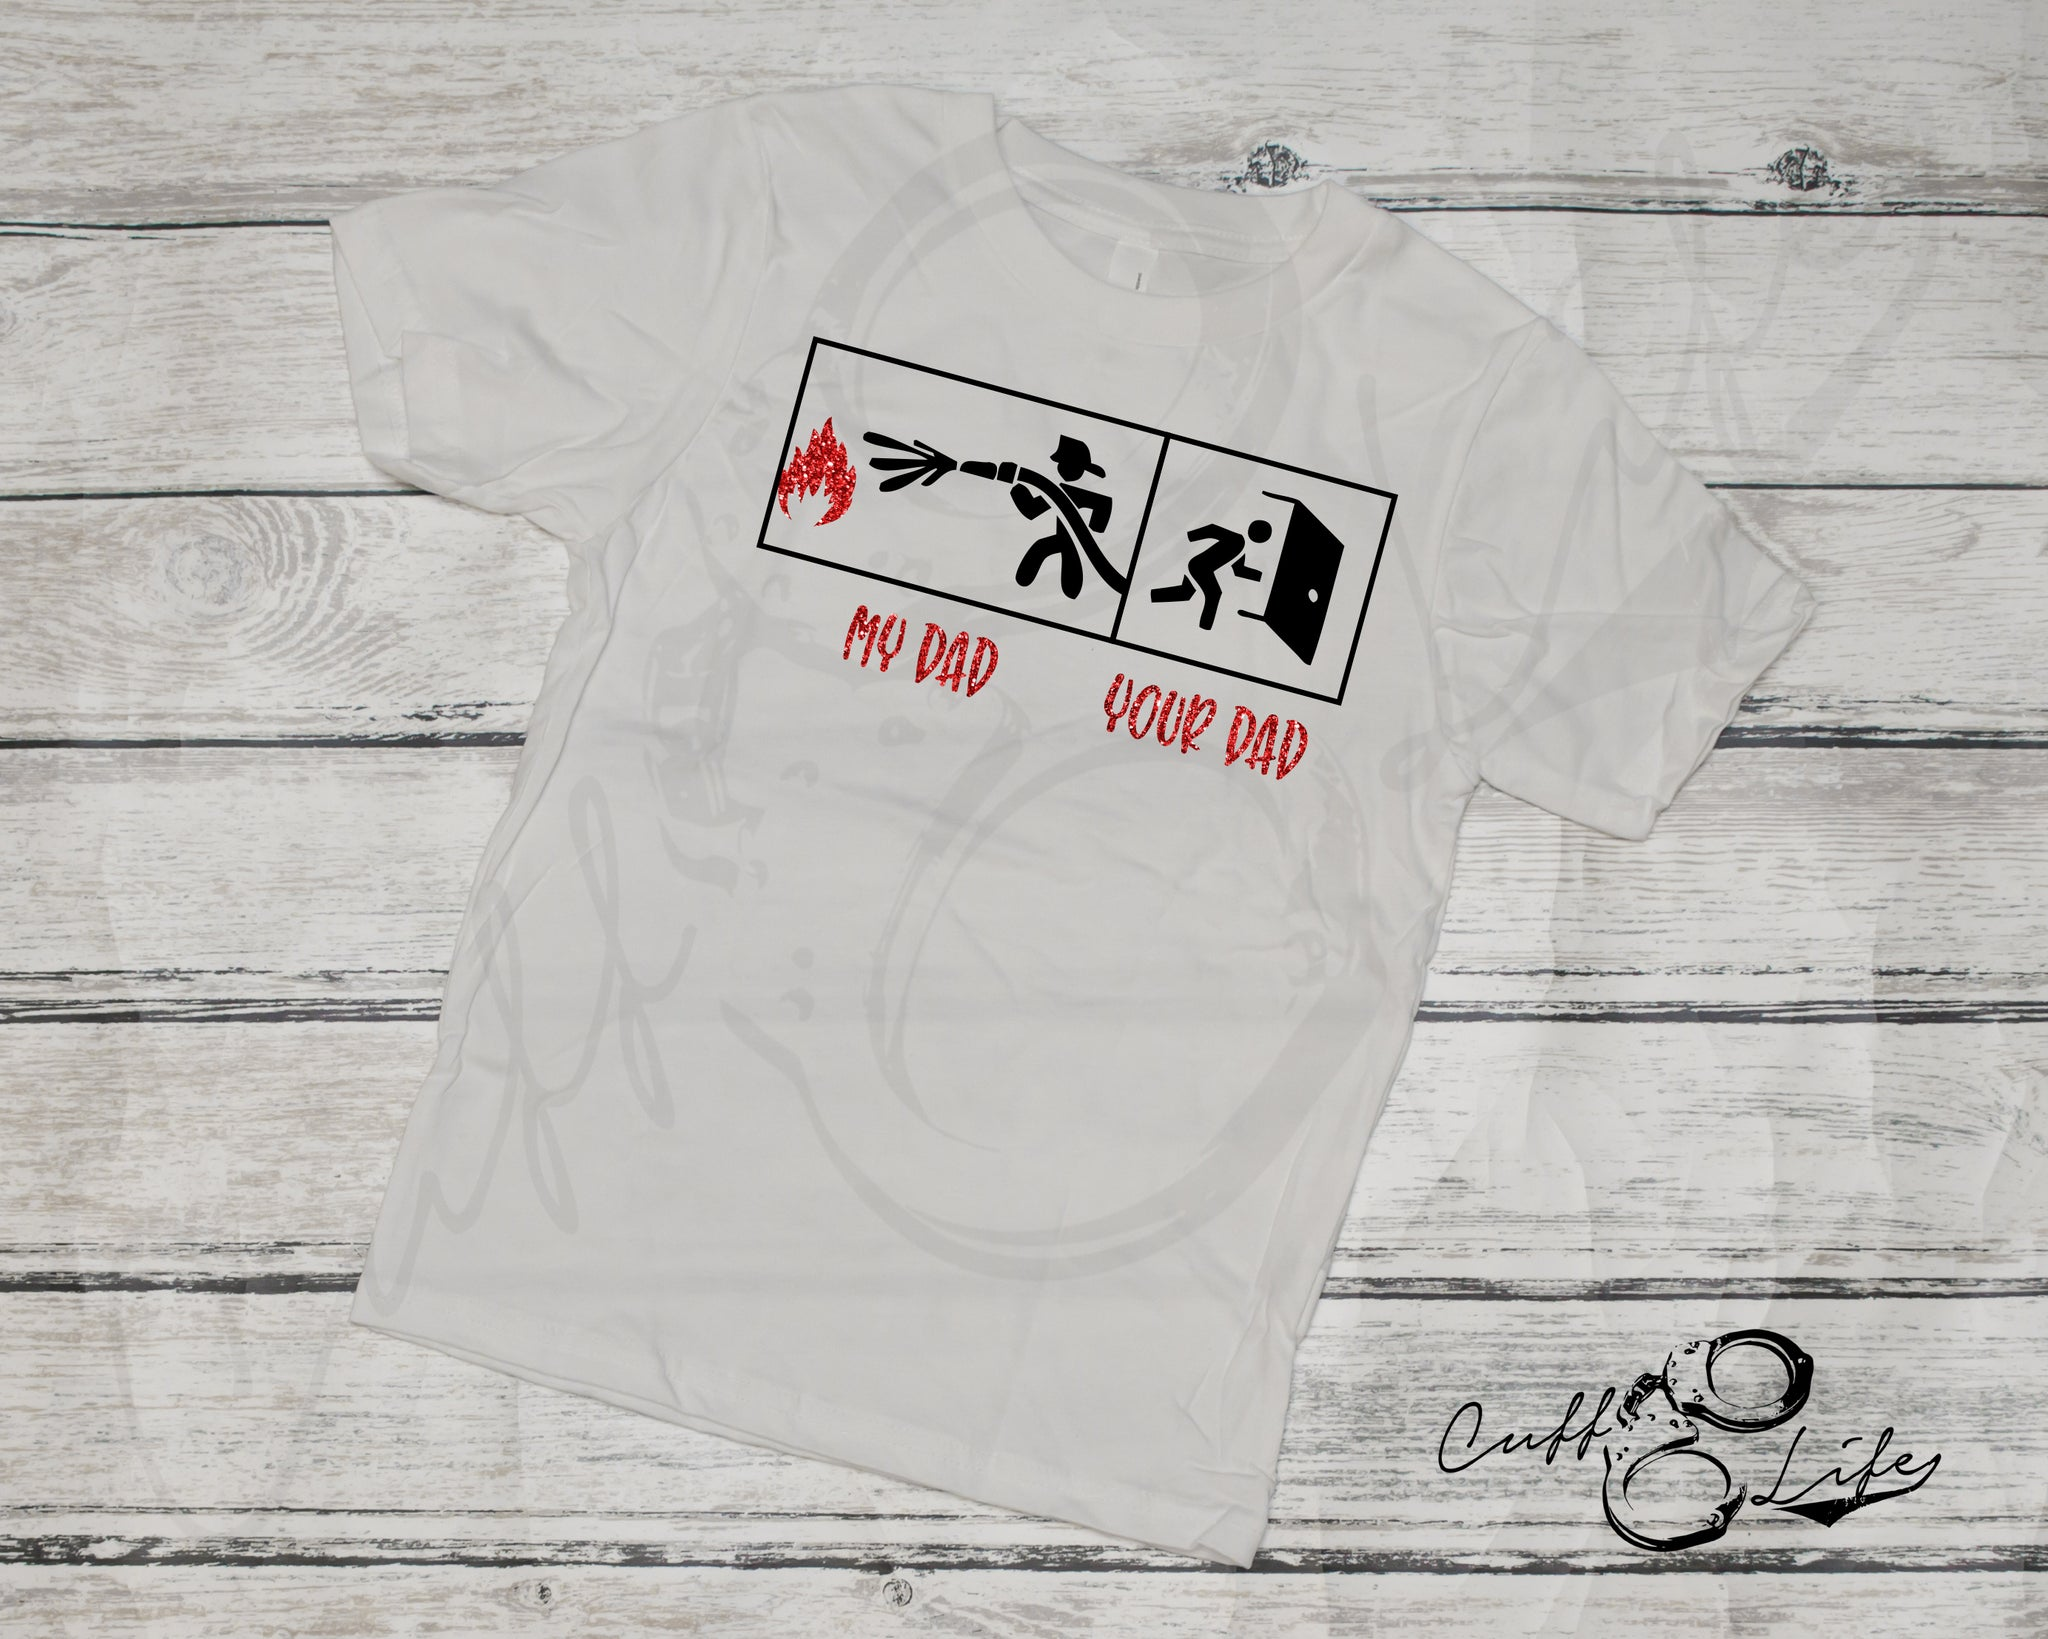 My Dad, Your Dad - Toddler/Youth T-Shirt